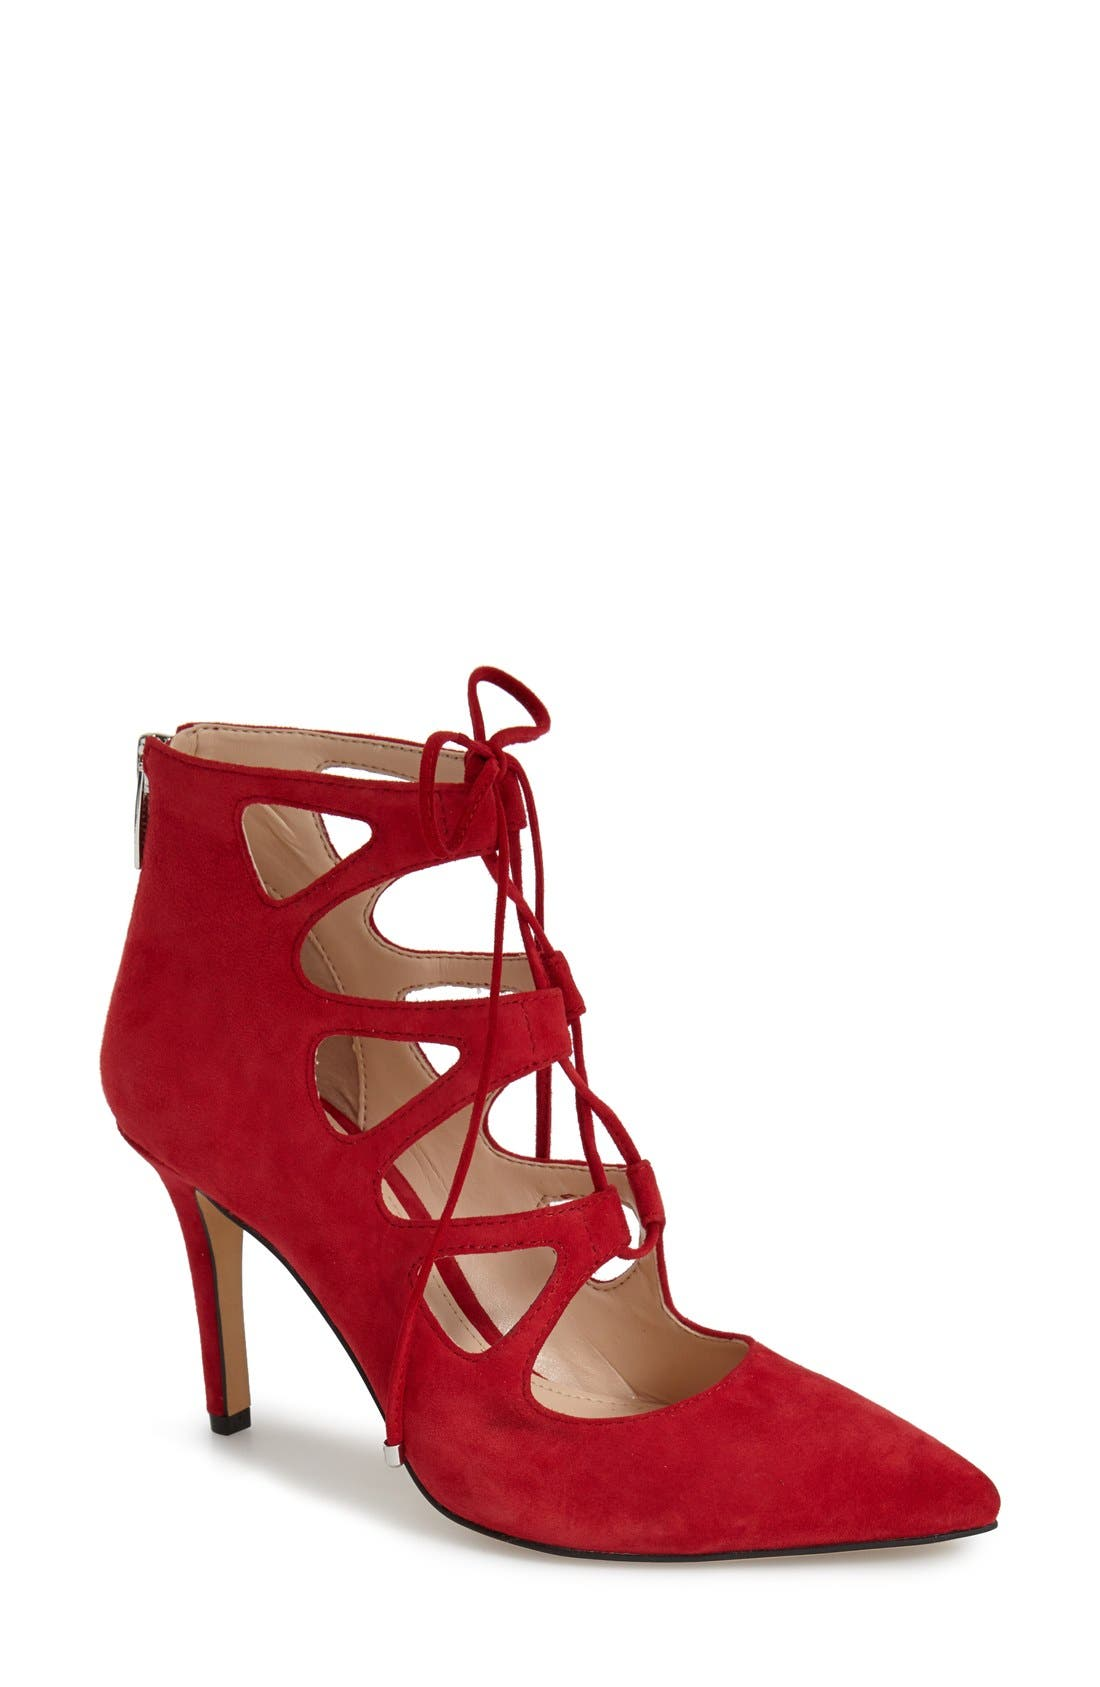 'Bodell' Lace Up Pump,                             Main thumbnail 1, color,                             Love Affair Suede